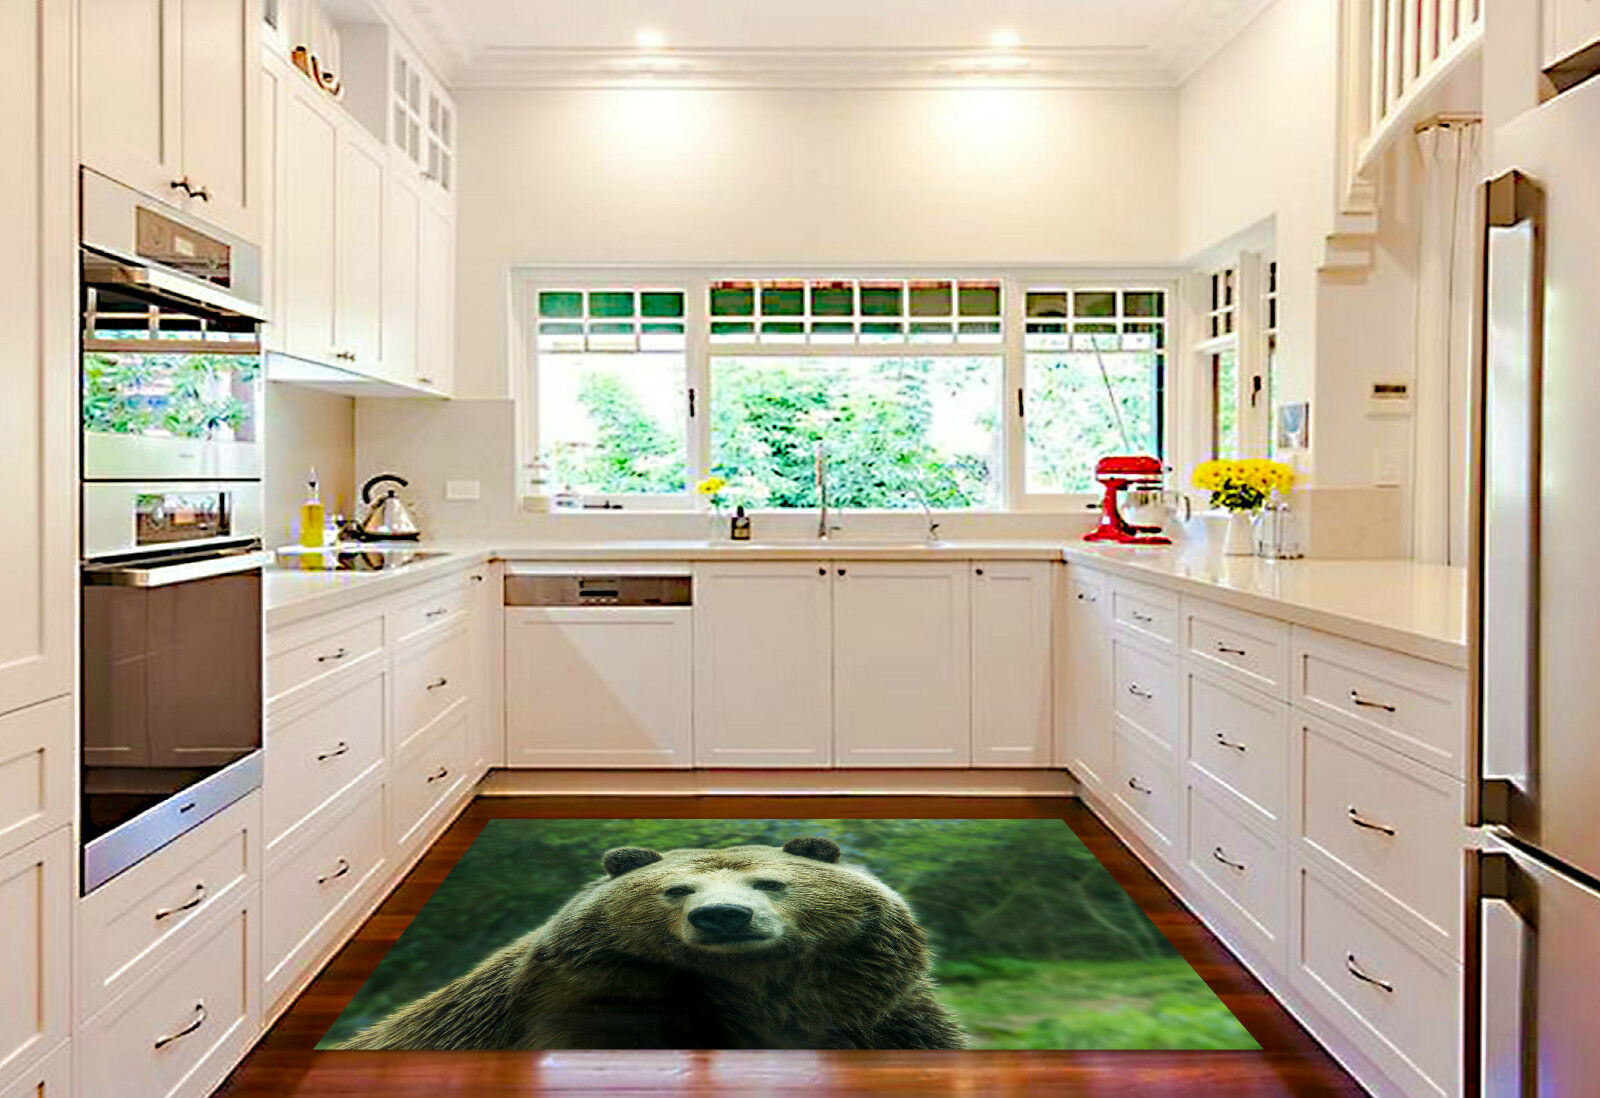 3D Innocent Bear Kitchen Mat Floor Murals Wall Print Wall Deco AJ WALLPAPER CA